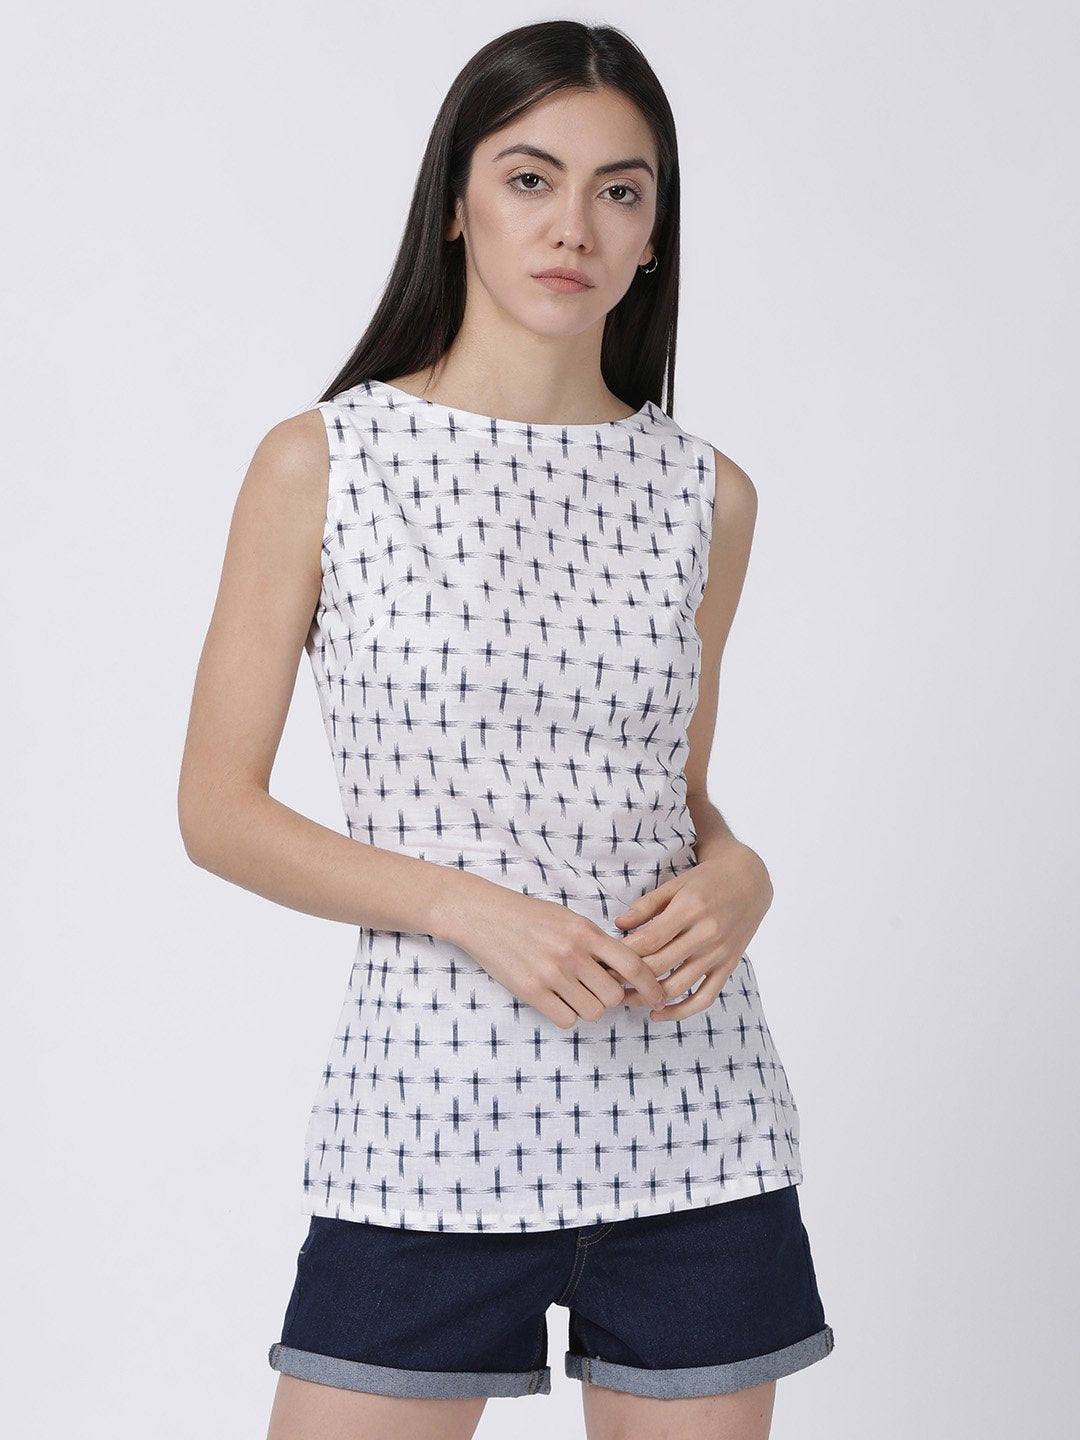 Sleeveless Navy Blue Cambric Cross Weave On White Top - Rossbelle